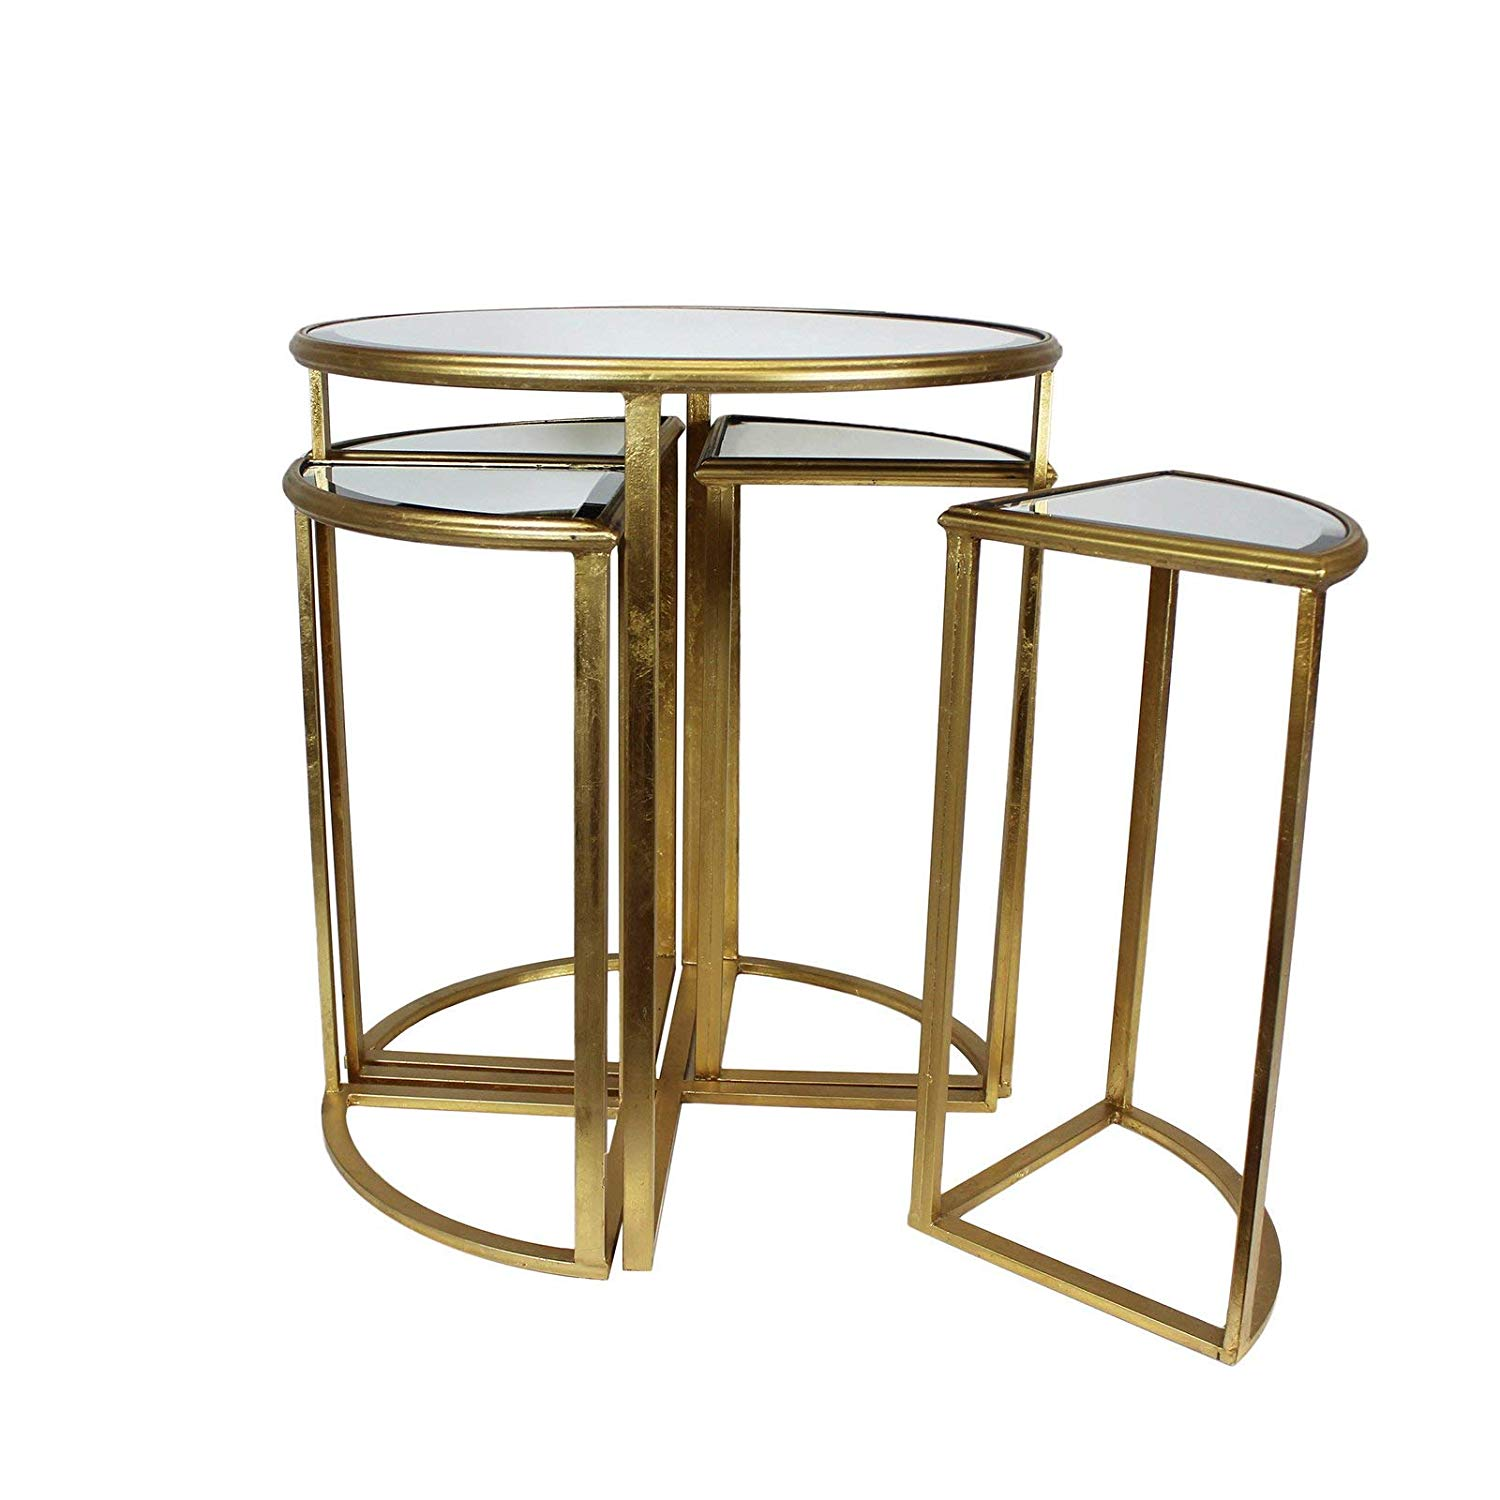 urban designs round gold mirror accent table home kitchen mirrored antique square coffee oak lamp large white ikea storage boxes mid century lounge chair wine rack cushions